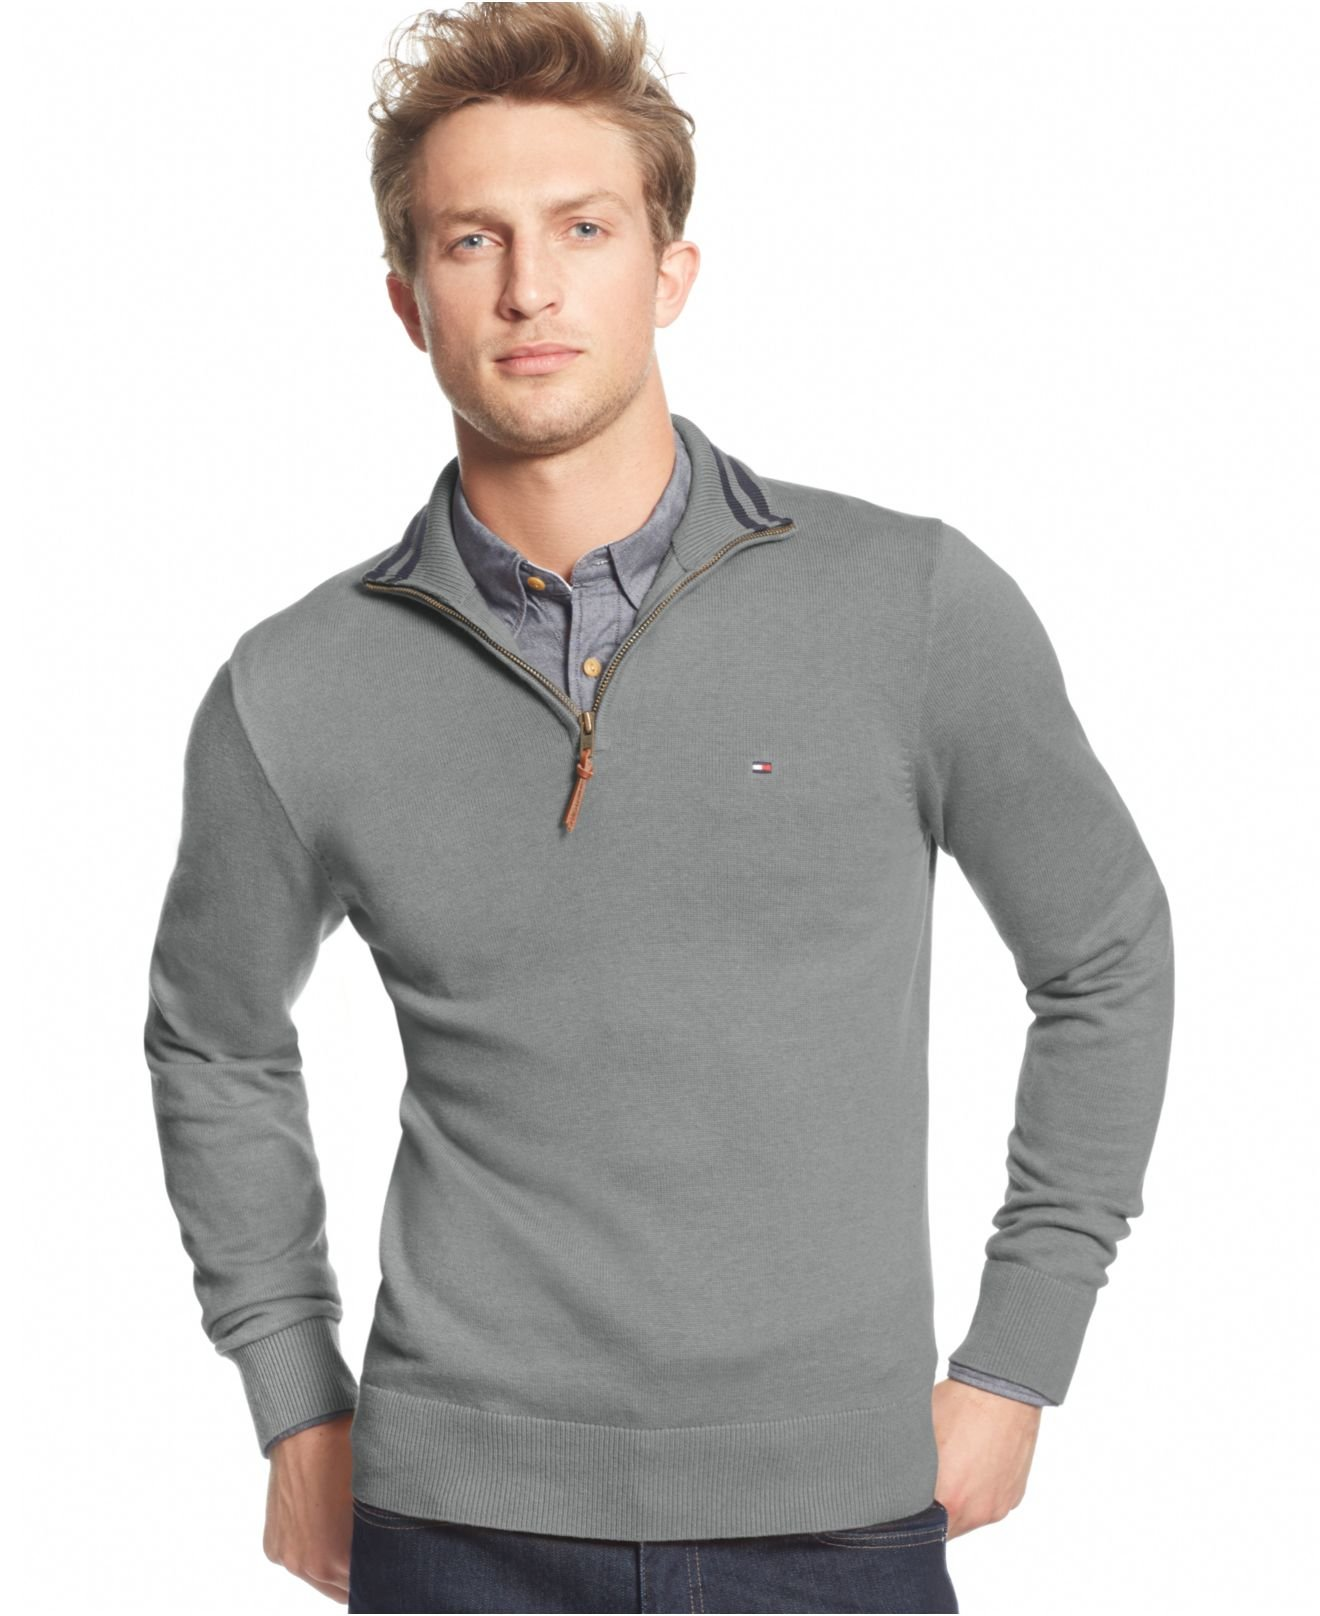 cfbbc4a1f Tommy Hilfiger Signature Solid Quarter-zip Sweater in Gray for Men ...